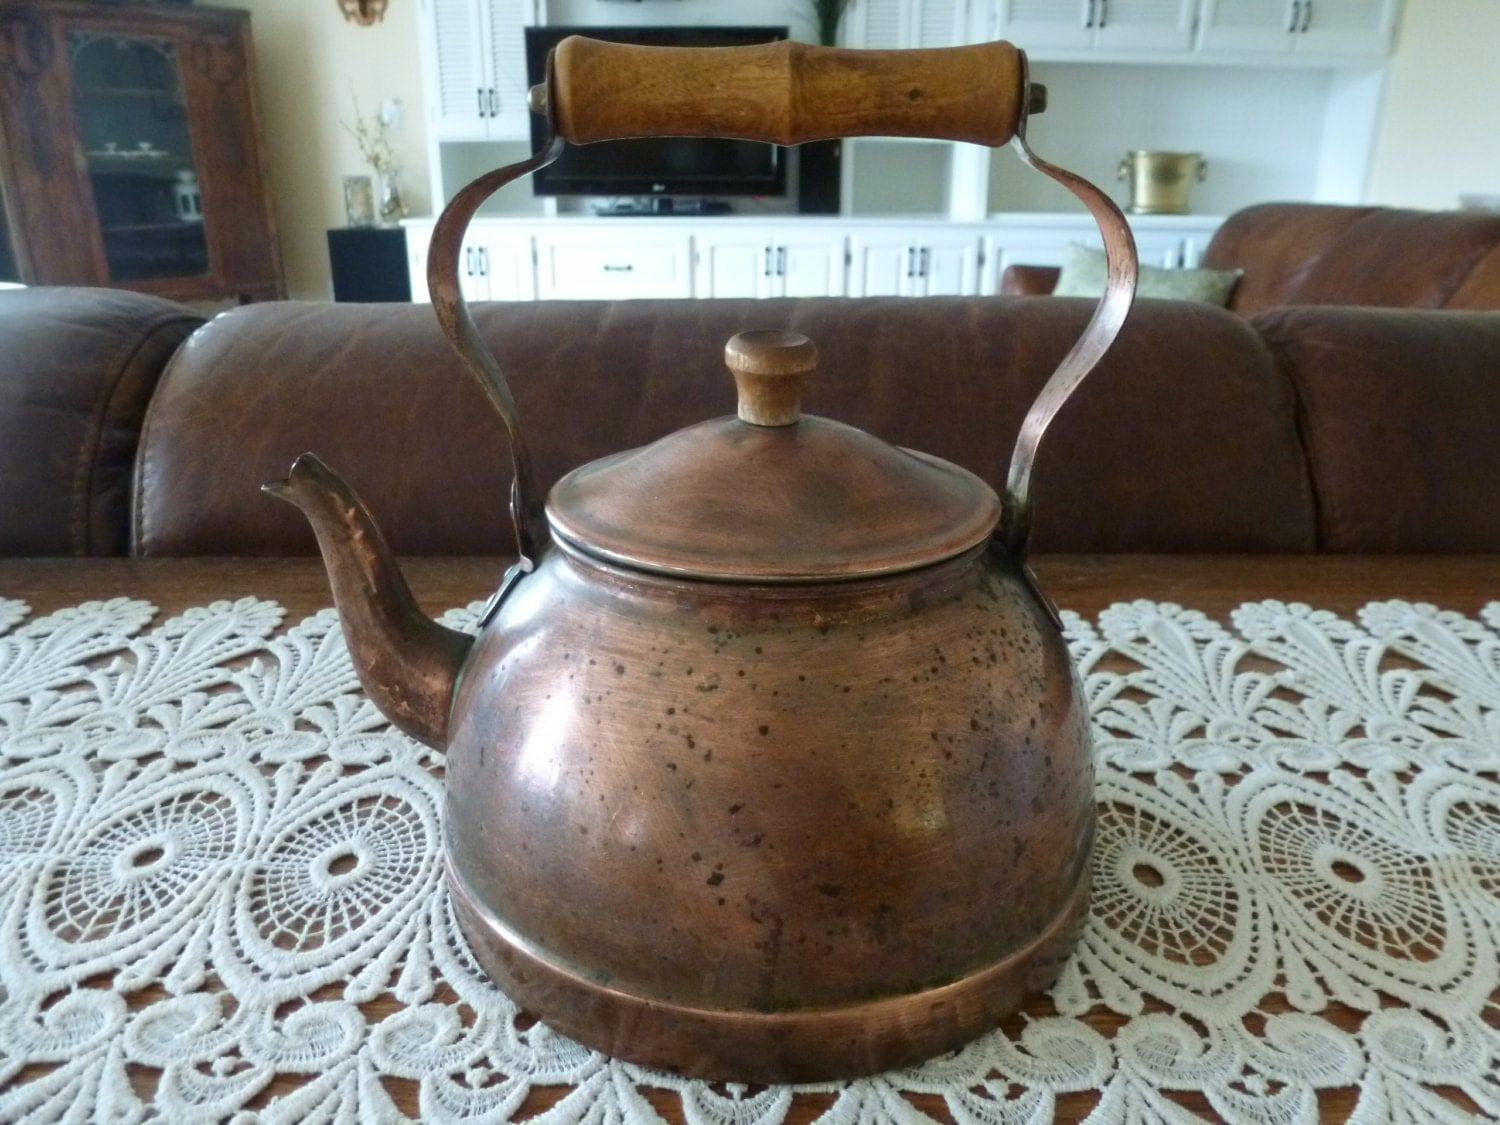 Vintage Copper Teapot Rustic Decorative Tea Kettle Home. Room Divider Curtain Track. Graduation Party Decorations Ideas. Cheap Rooms In Ocean City Md. Room Dividers Screens. Chalkboard Decorations. Decorative Return Air Vent Cover. Pom Poms Decorations. Decorative Wall Medallions